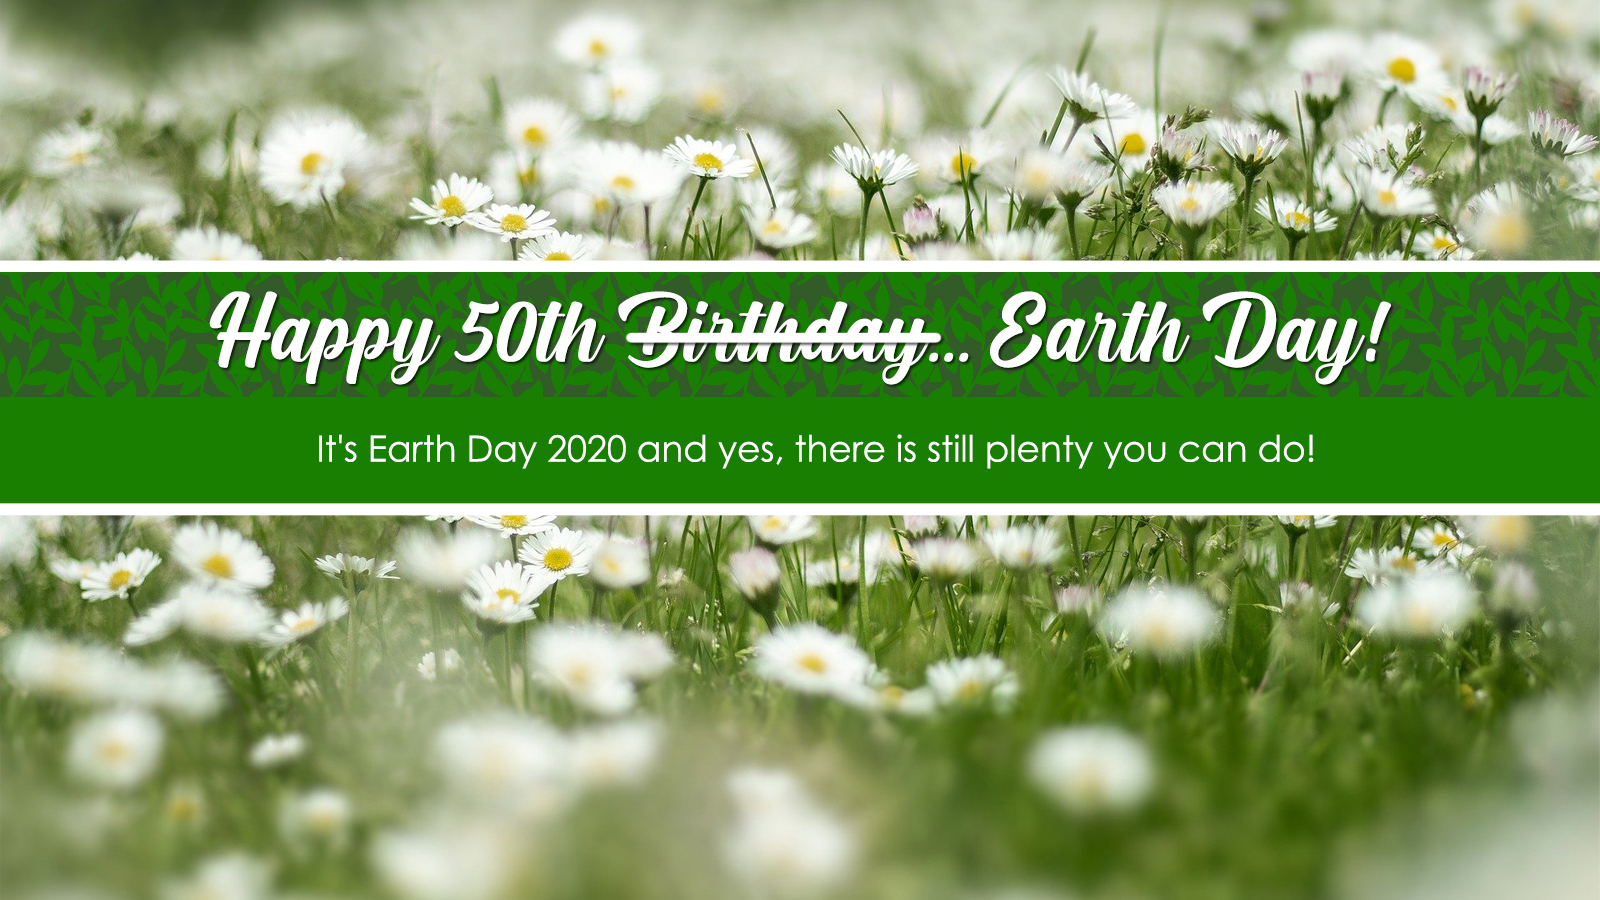 It's Earth Day 2020 And Yes, There is Still Plenty You Can Do!